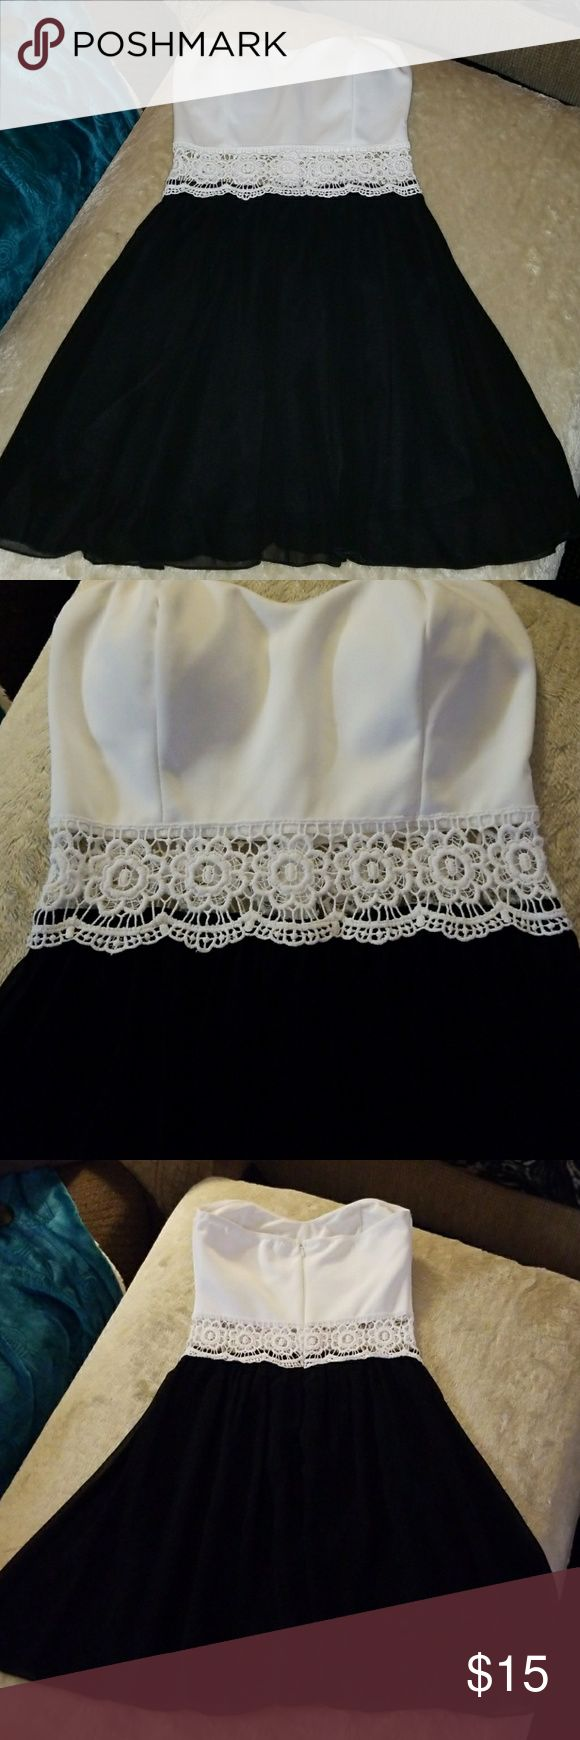 Lady's or Jr's Strapless Black & White Mini-Dress Excellent condition! Like New! Strapless dress with small padded breast cups (size 32 A), is my guess. Sheer skirt with liner, see-thru waist , and white bodice! 95% polyester and 5% spandex. Hand wash cold, line dry. Super cute. See picture for length from breast to hem line. Just Me Dresses Mini